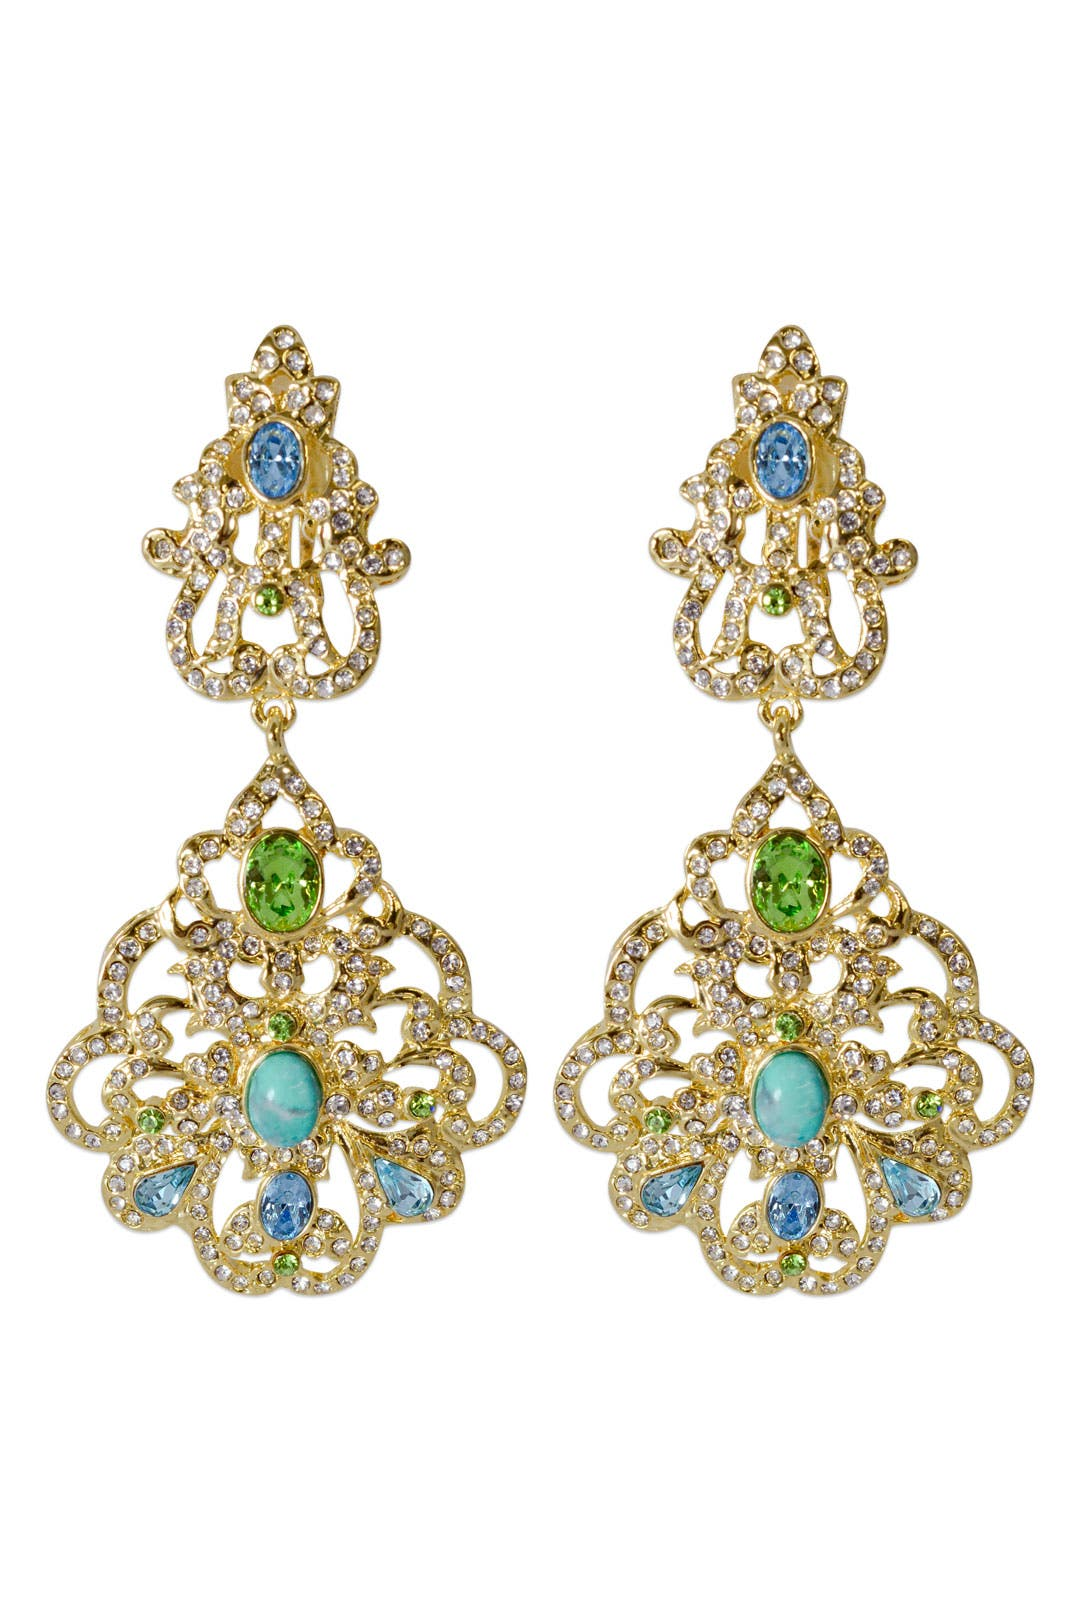 Rococo Filigree Earrings by Badgley Mischka Jewelry